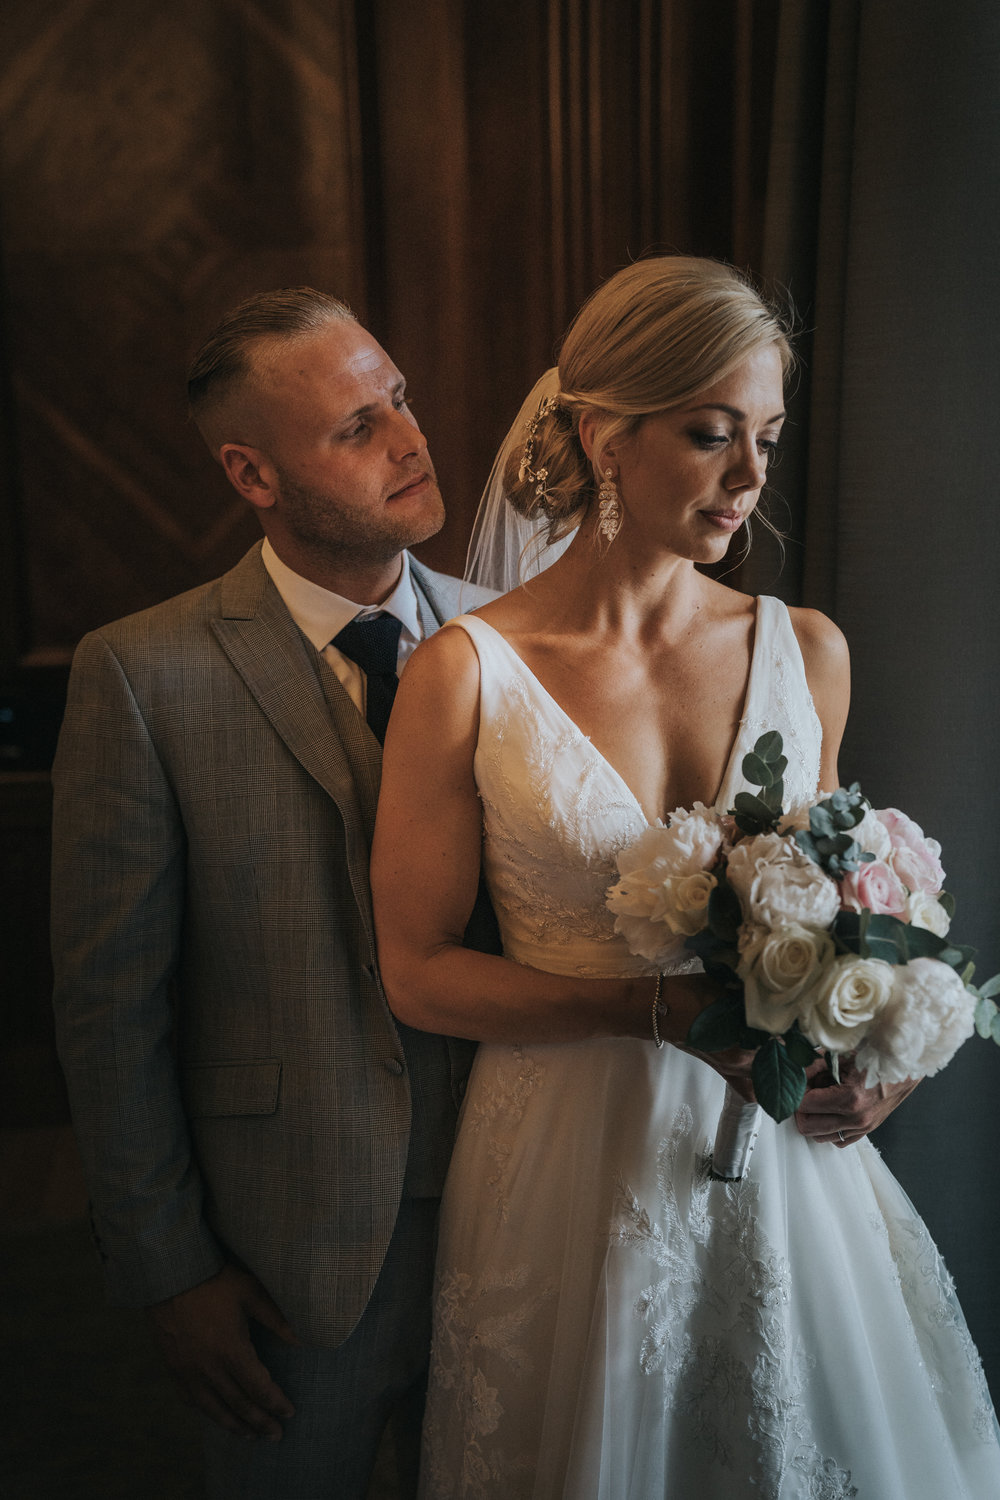 marylebone-old-town-hall-wedding-photography-videography-40